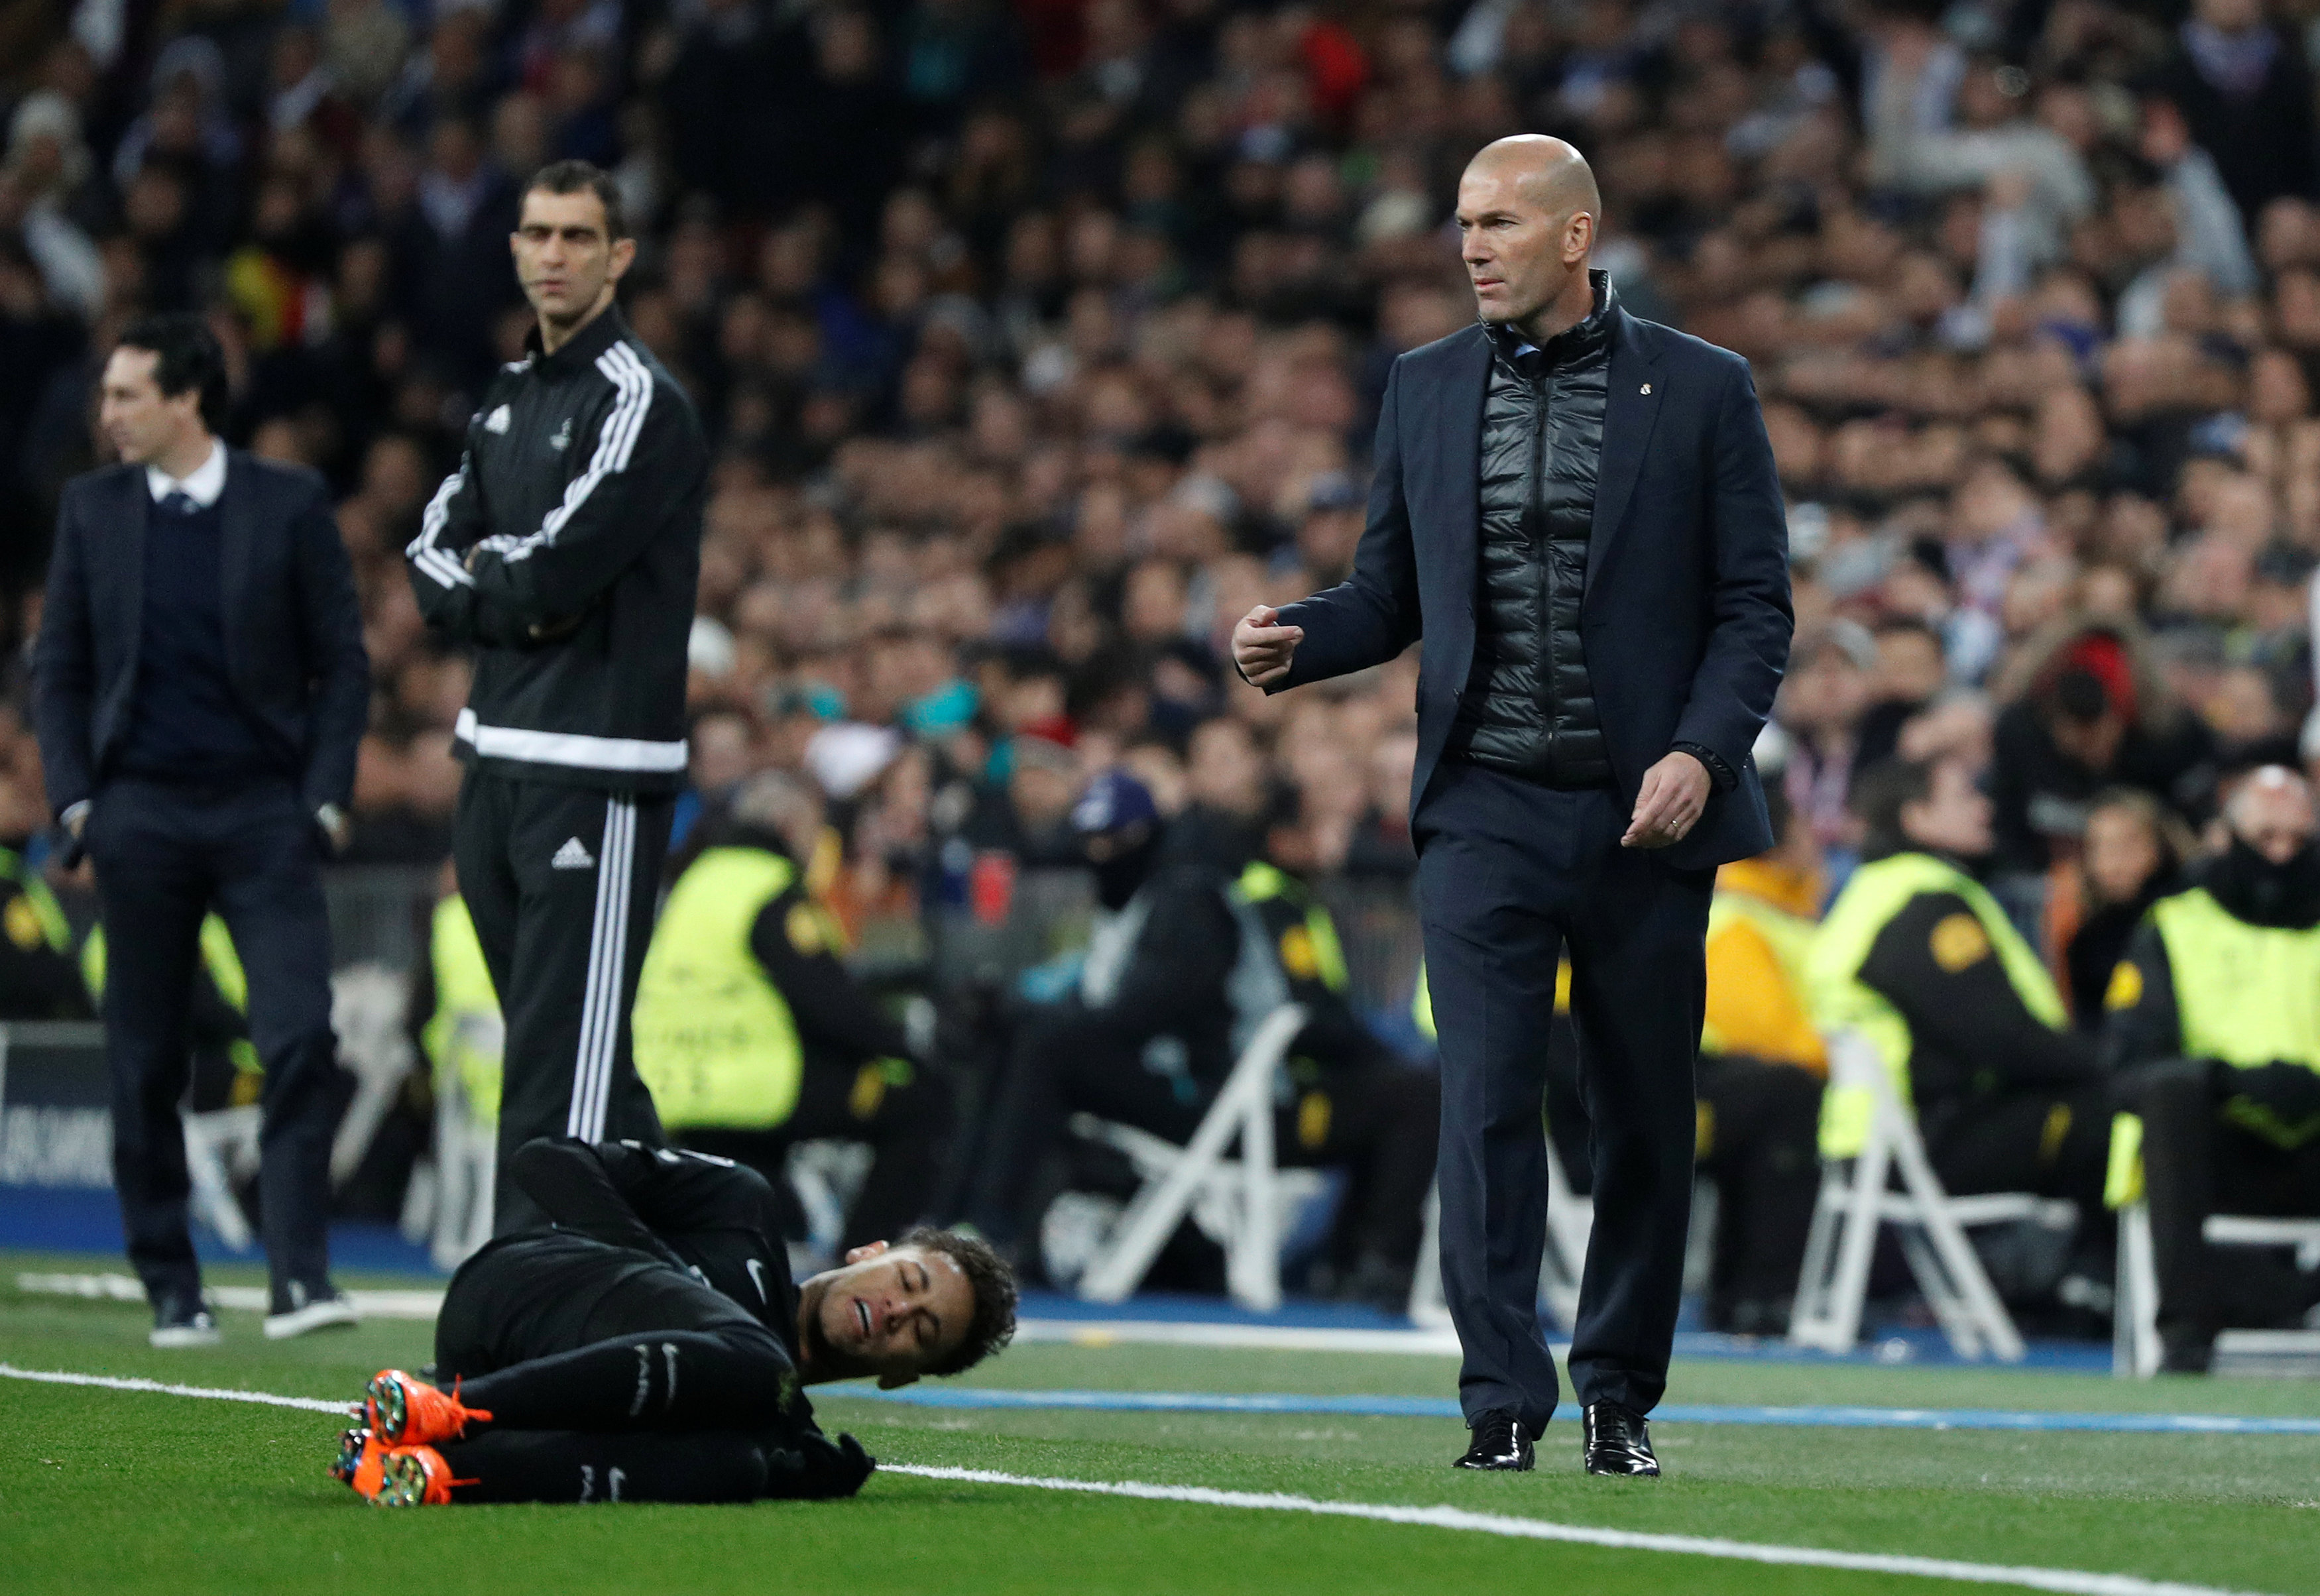 Football - Transferts - Neymar au Real Madrid ? Zidane botte (encore) en touche